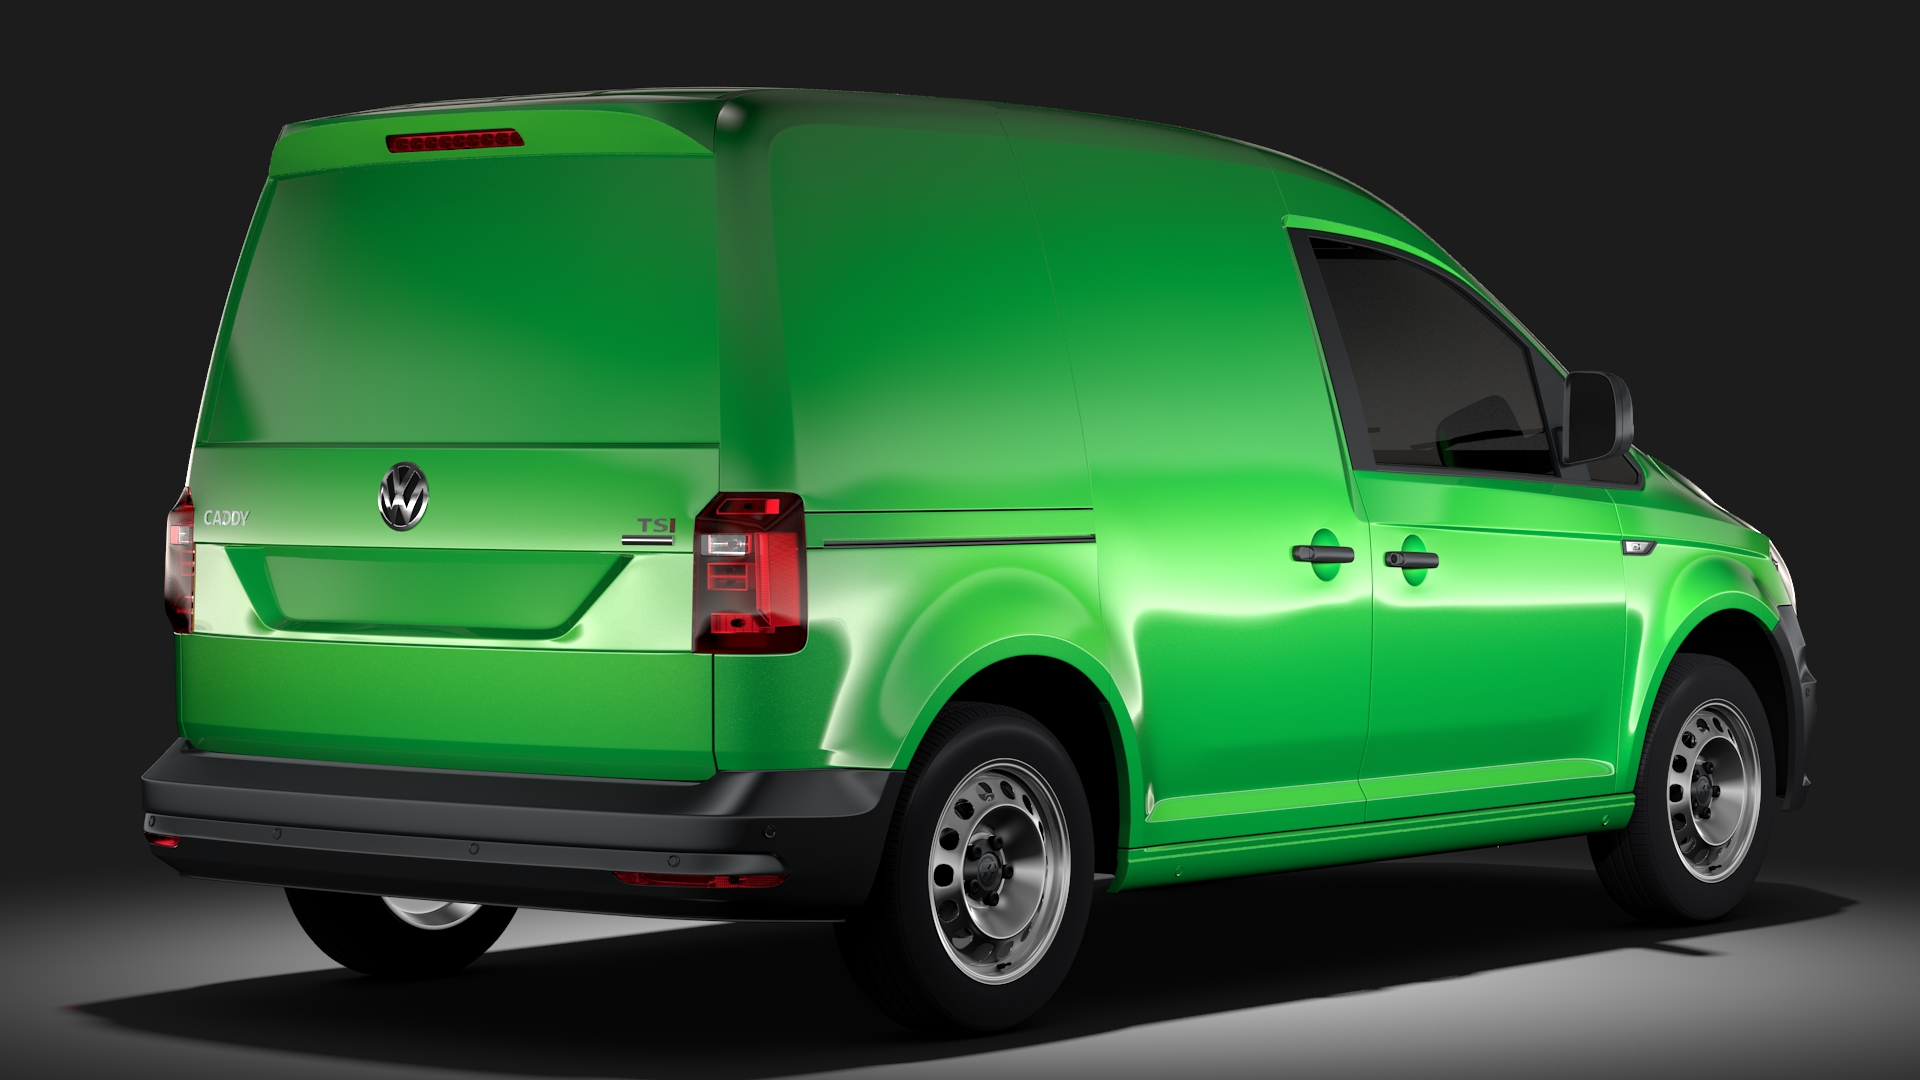 volkswagen caddy panel van l1 2017 3d model buy volkswagen caddy panel van l1 2017 3d model. Black Bedroom Furniture Sets. Home Design Ideas